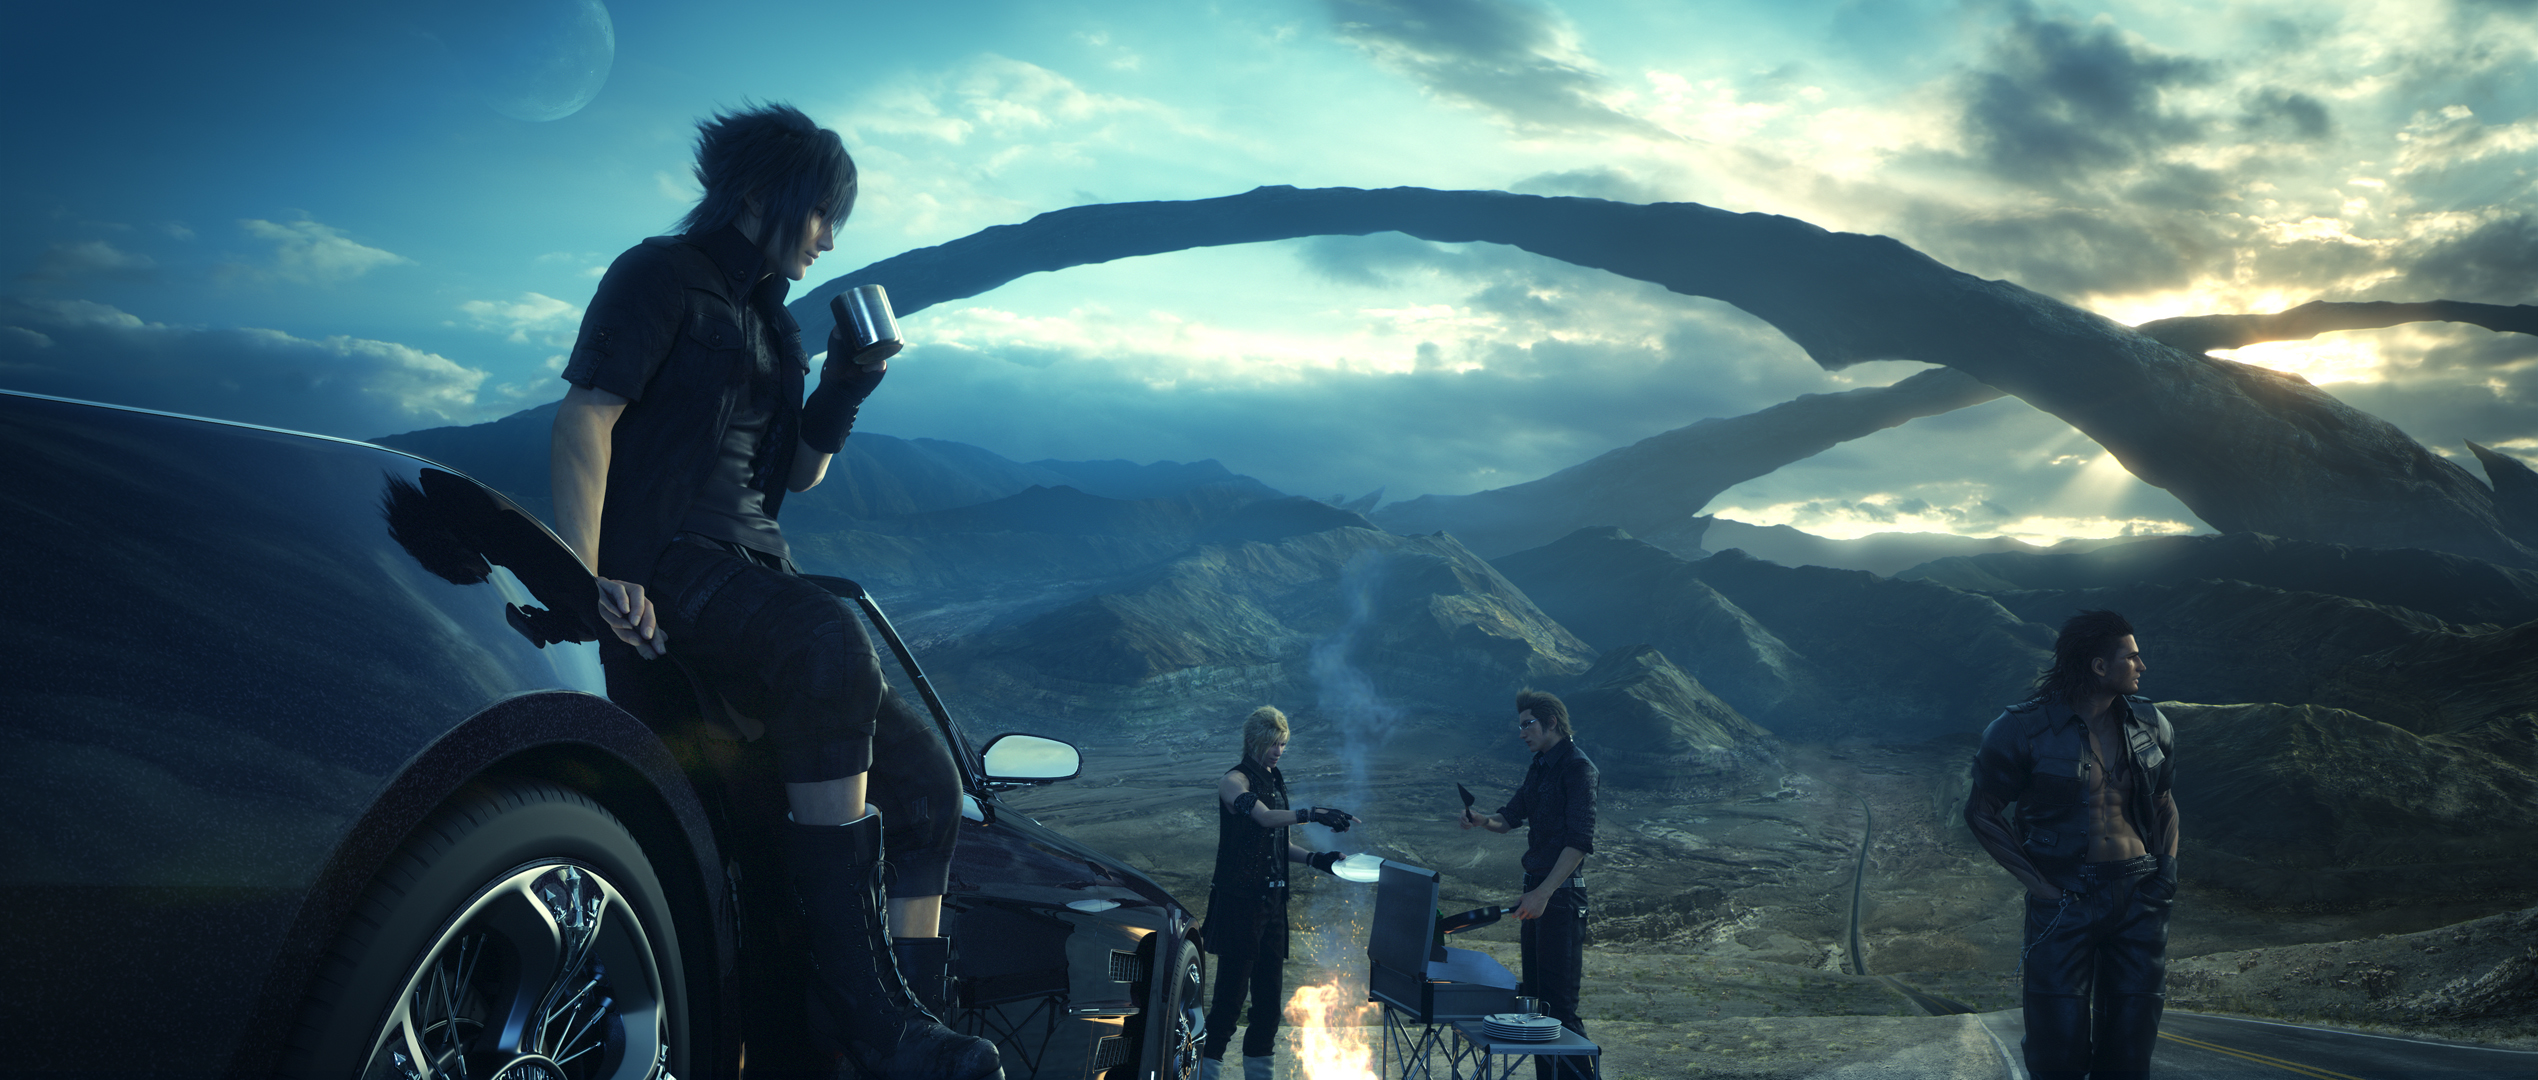 Final-Fantasy-XV-Picture-of-the-Day-http-mmorpgwall-com-final-fantasy-xv-picture-of-the-day-wallpaper-wp3605562